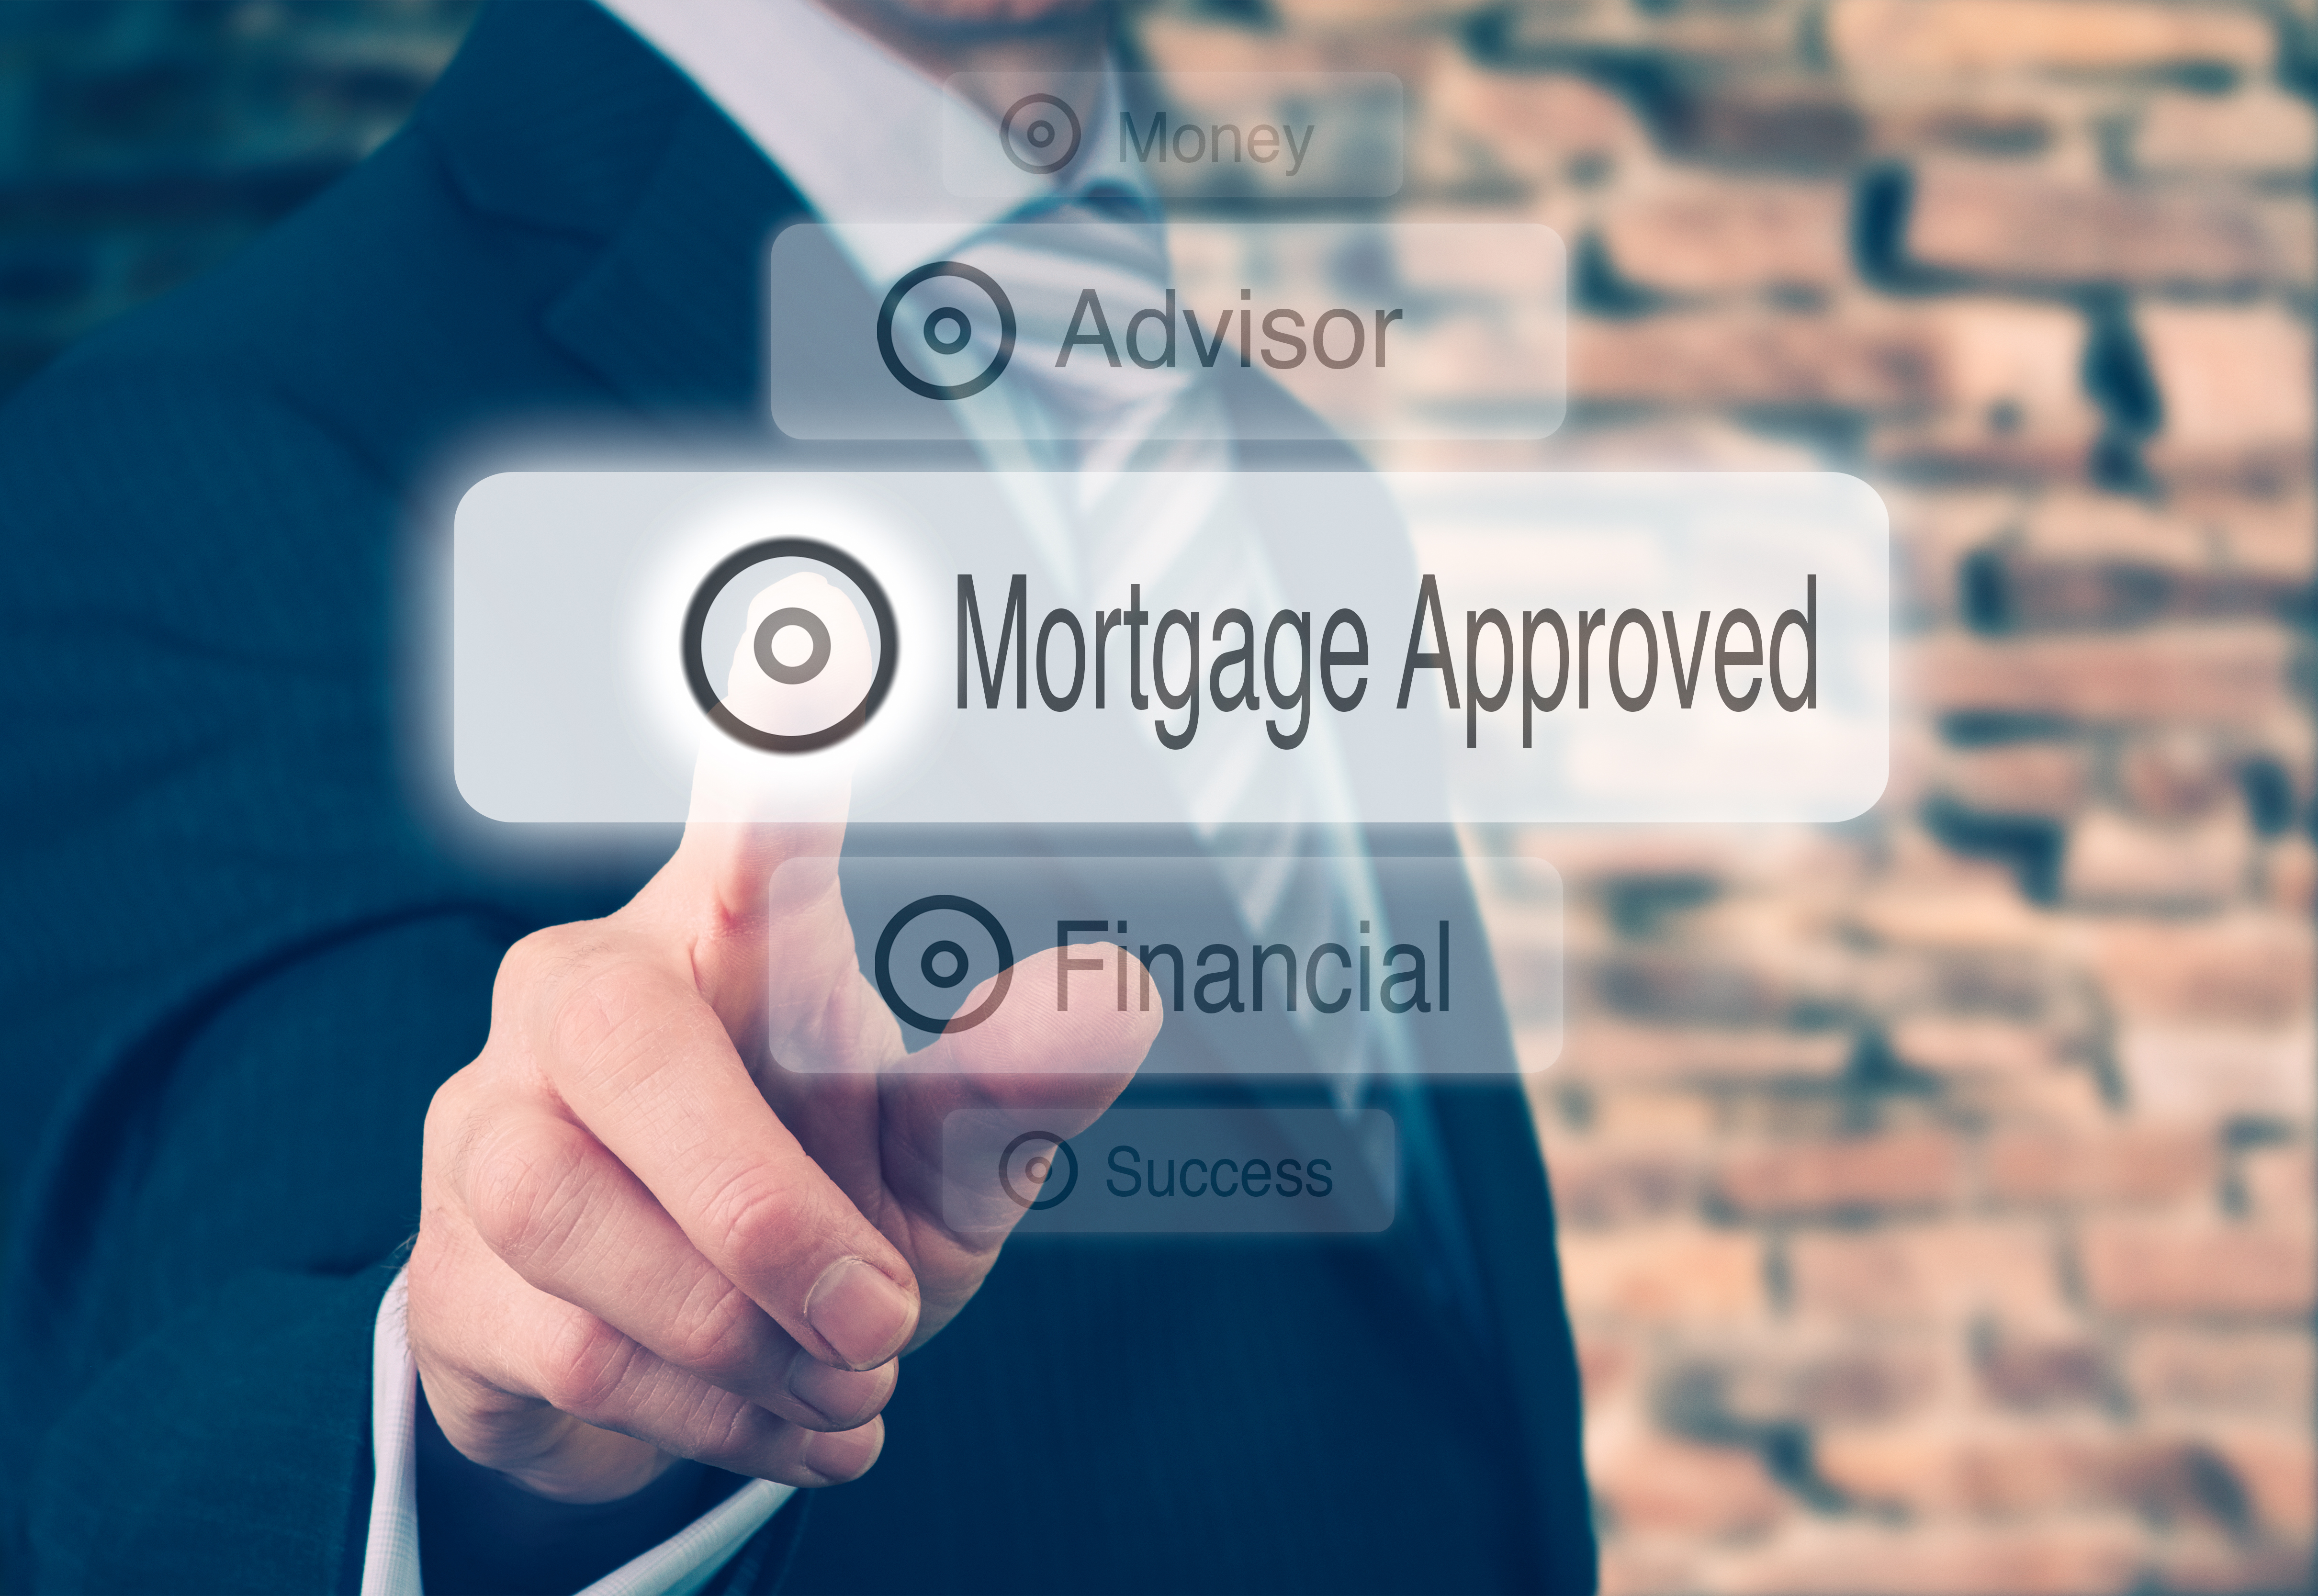 How To Get Pre-Approved For A Home Loan In Richmond, Va.